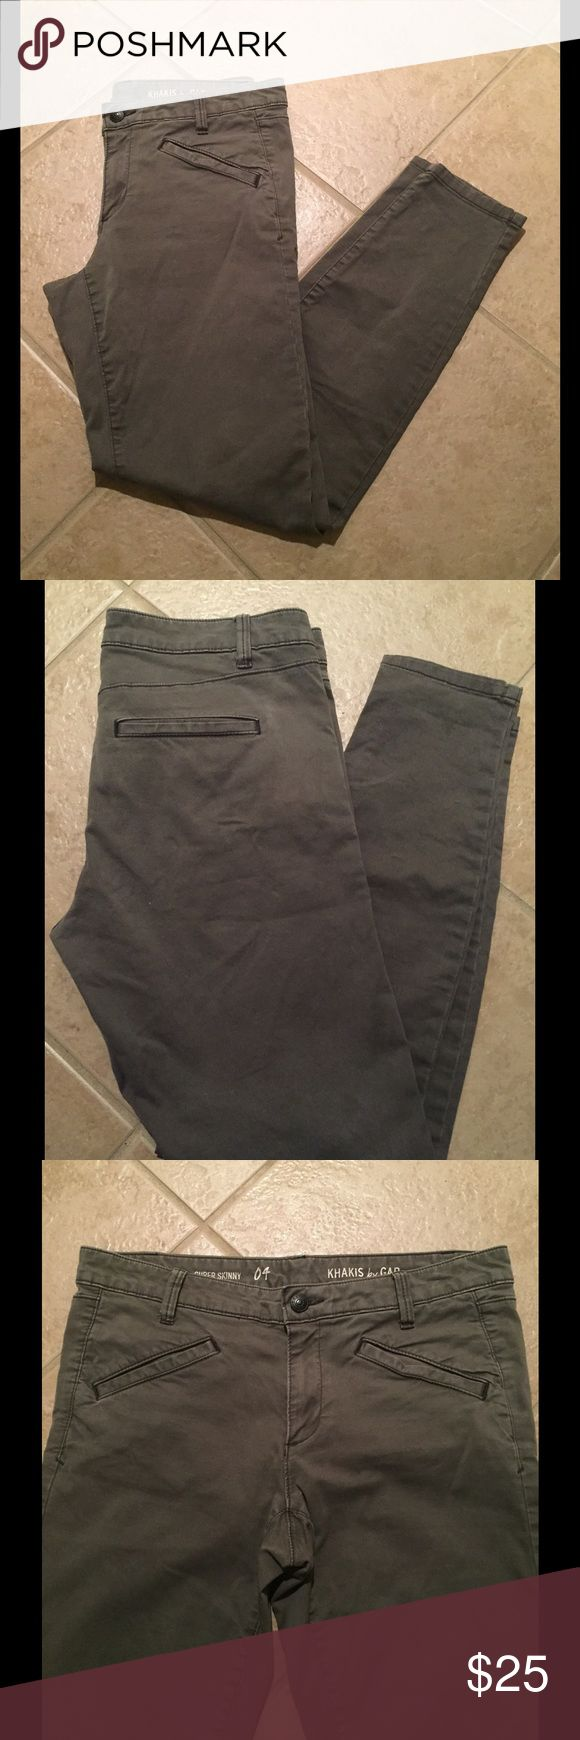 GAP Super Skinny Dark Gray Khakis Dark gray, olive-toned, khaki skinnies with welt back pockets. Great condition! Gap Pants Skinny